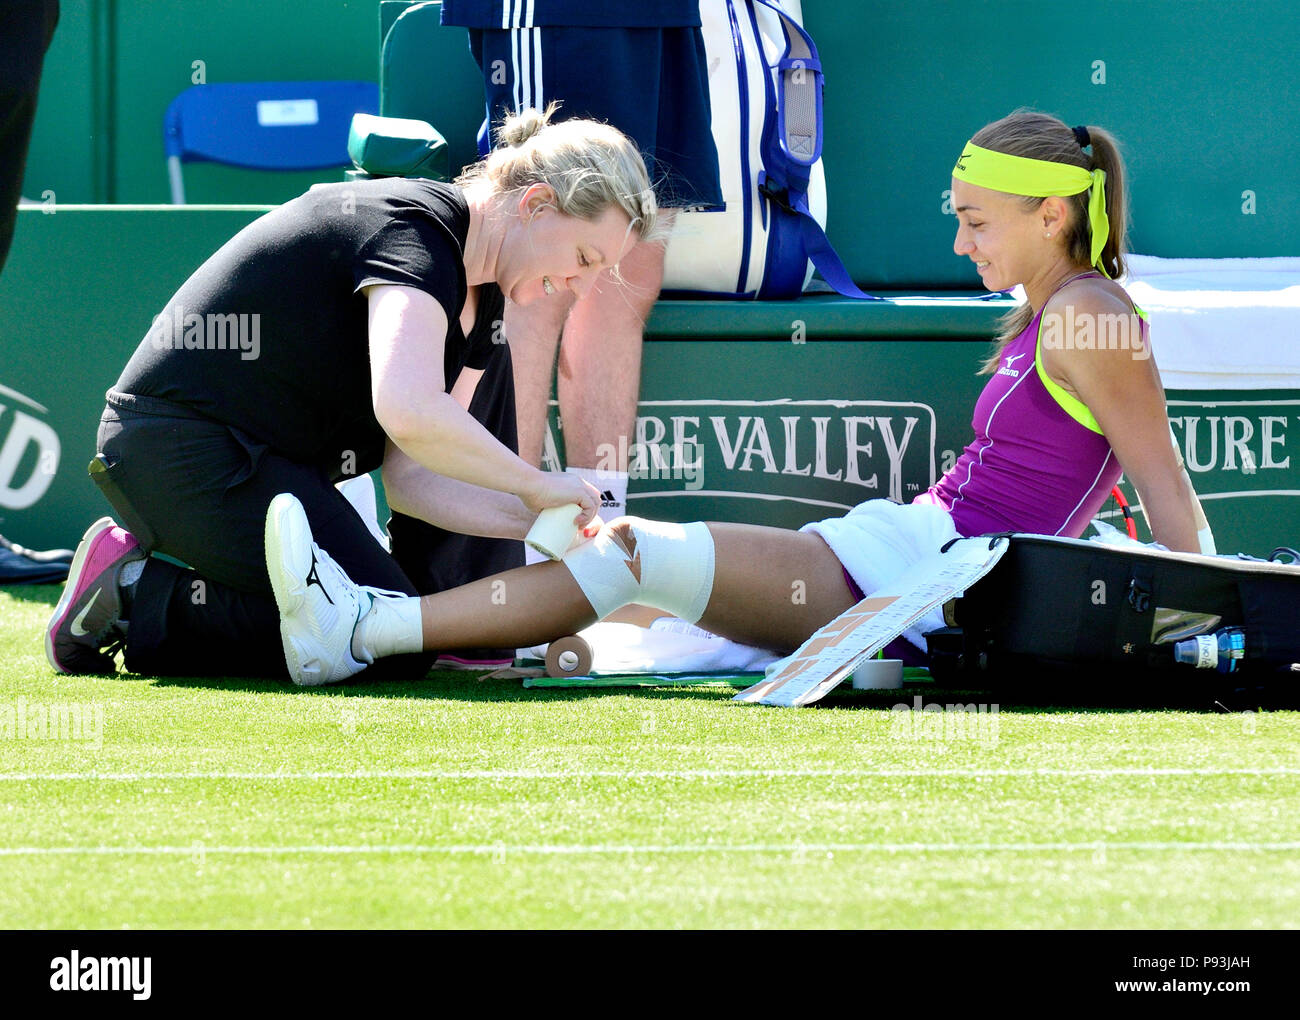 Aleksandra Krunic (Slovakia) receiving on court medical help and physiotherapy during the Nature Valley International, Eastbourne 26th June 2018 - Stock Image